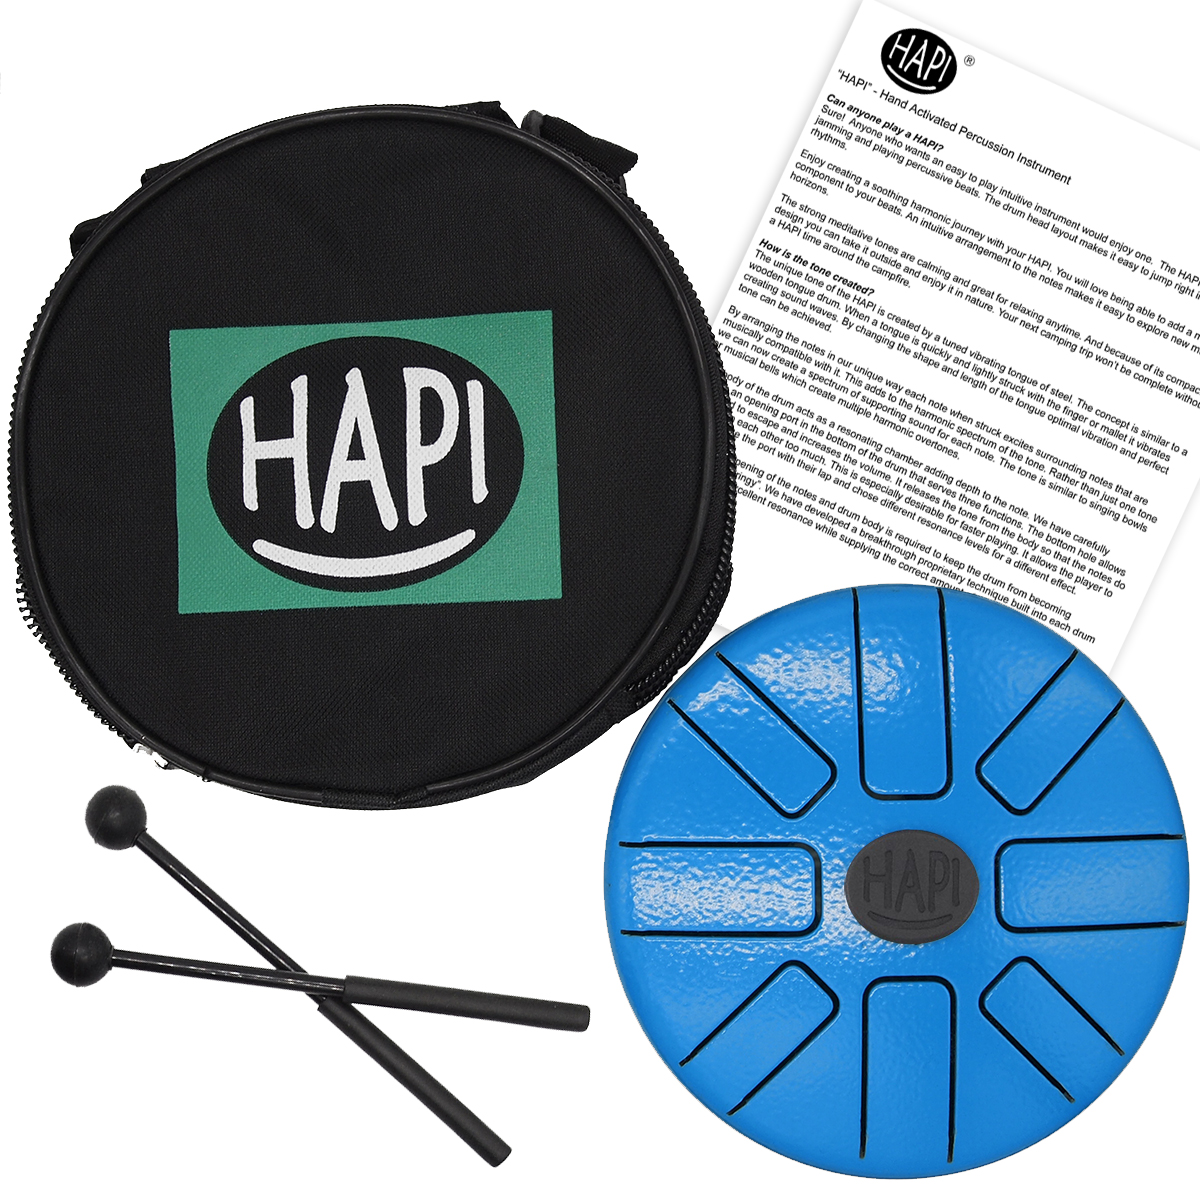 HAPI Steel Tongue Drum Play Along Tini Accessories